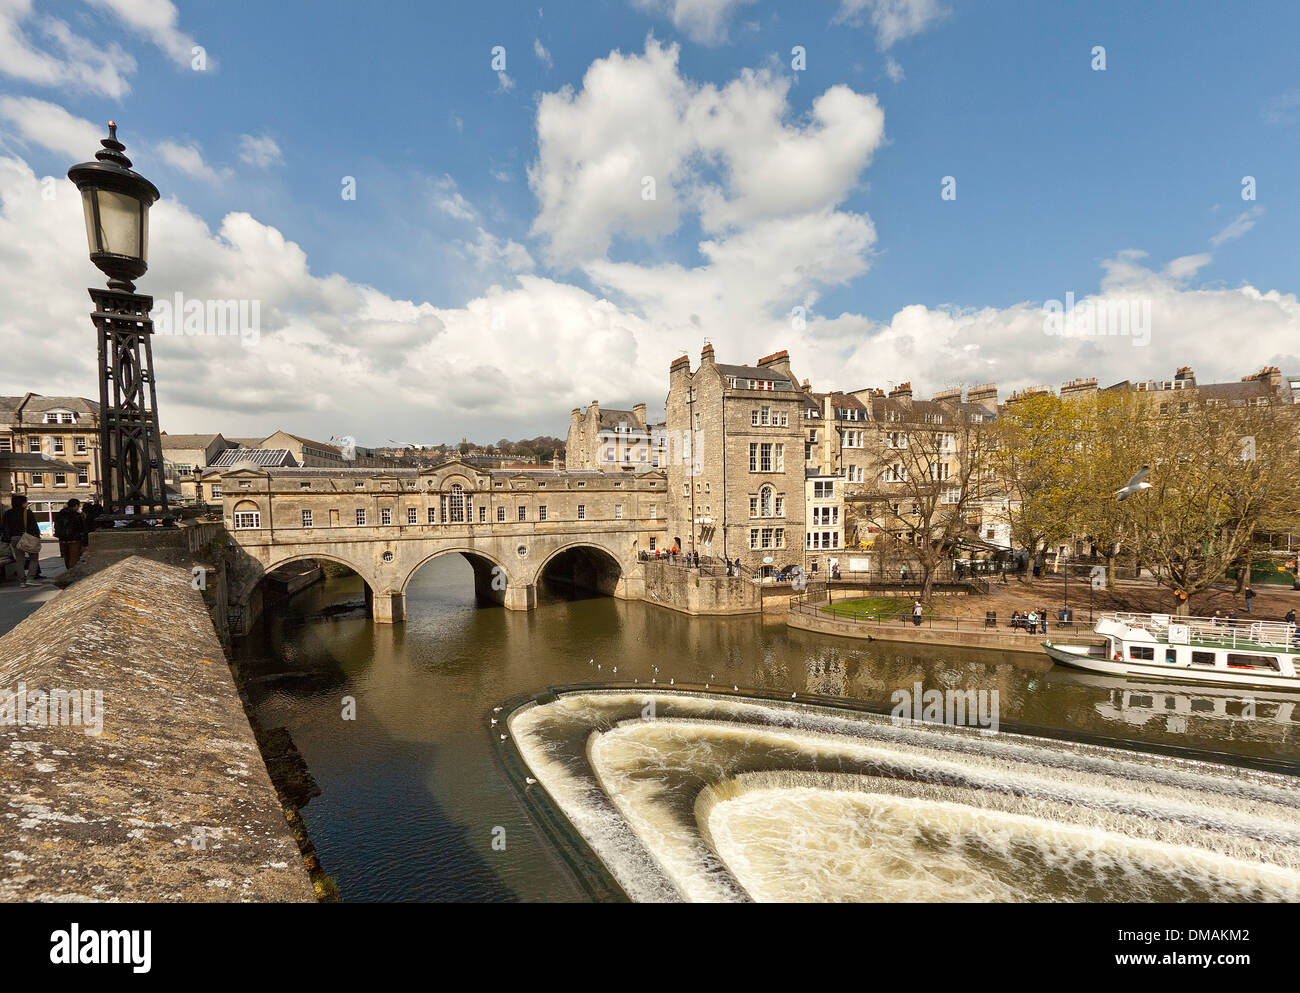 River Avon and the weir with Pulteney Bridge, designed by Robert Adam in a Palladian style, Bath, Somerset, England, UK. - Stock Image